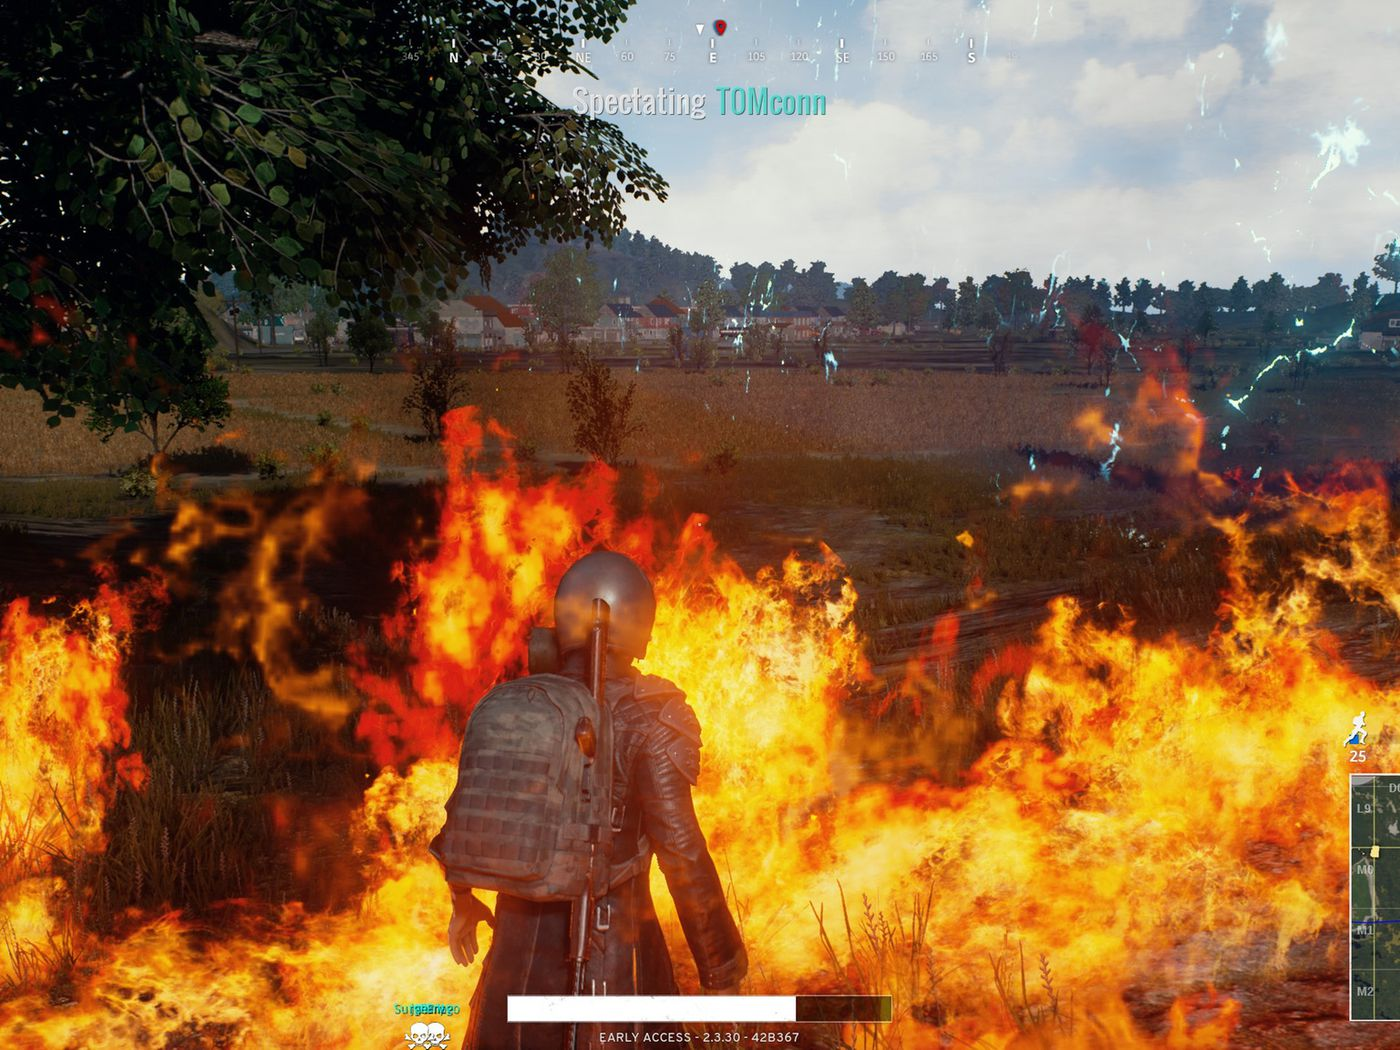 PUBG developer admits PUBG is broken with 'Fix PUBG' campaign - The